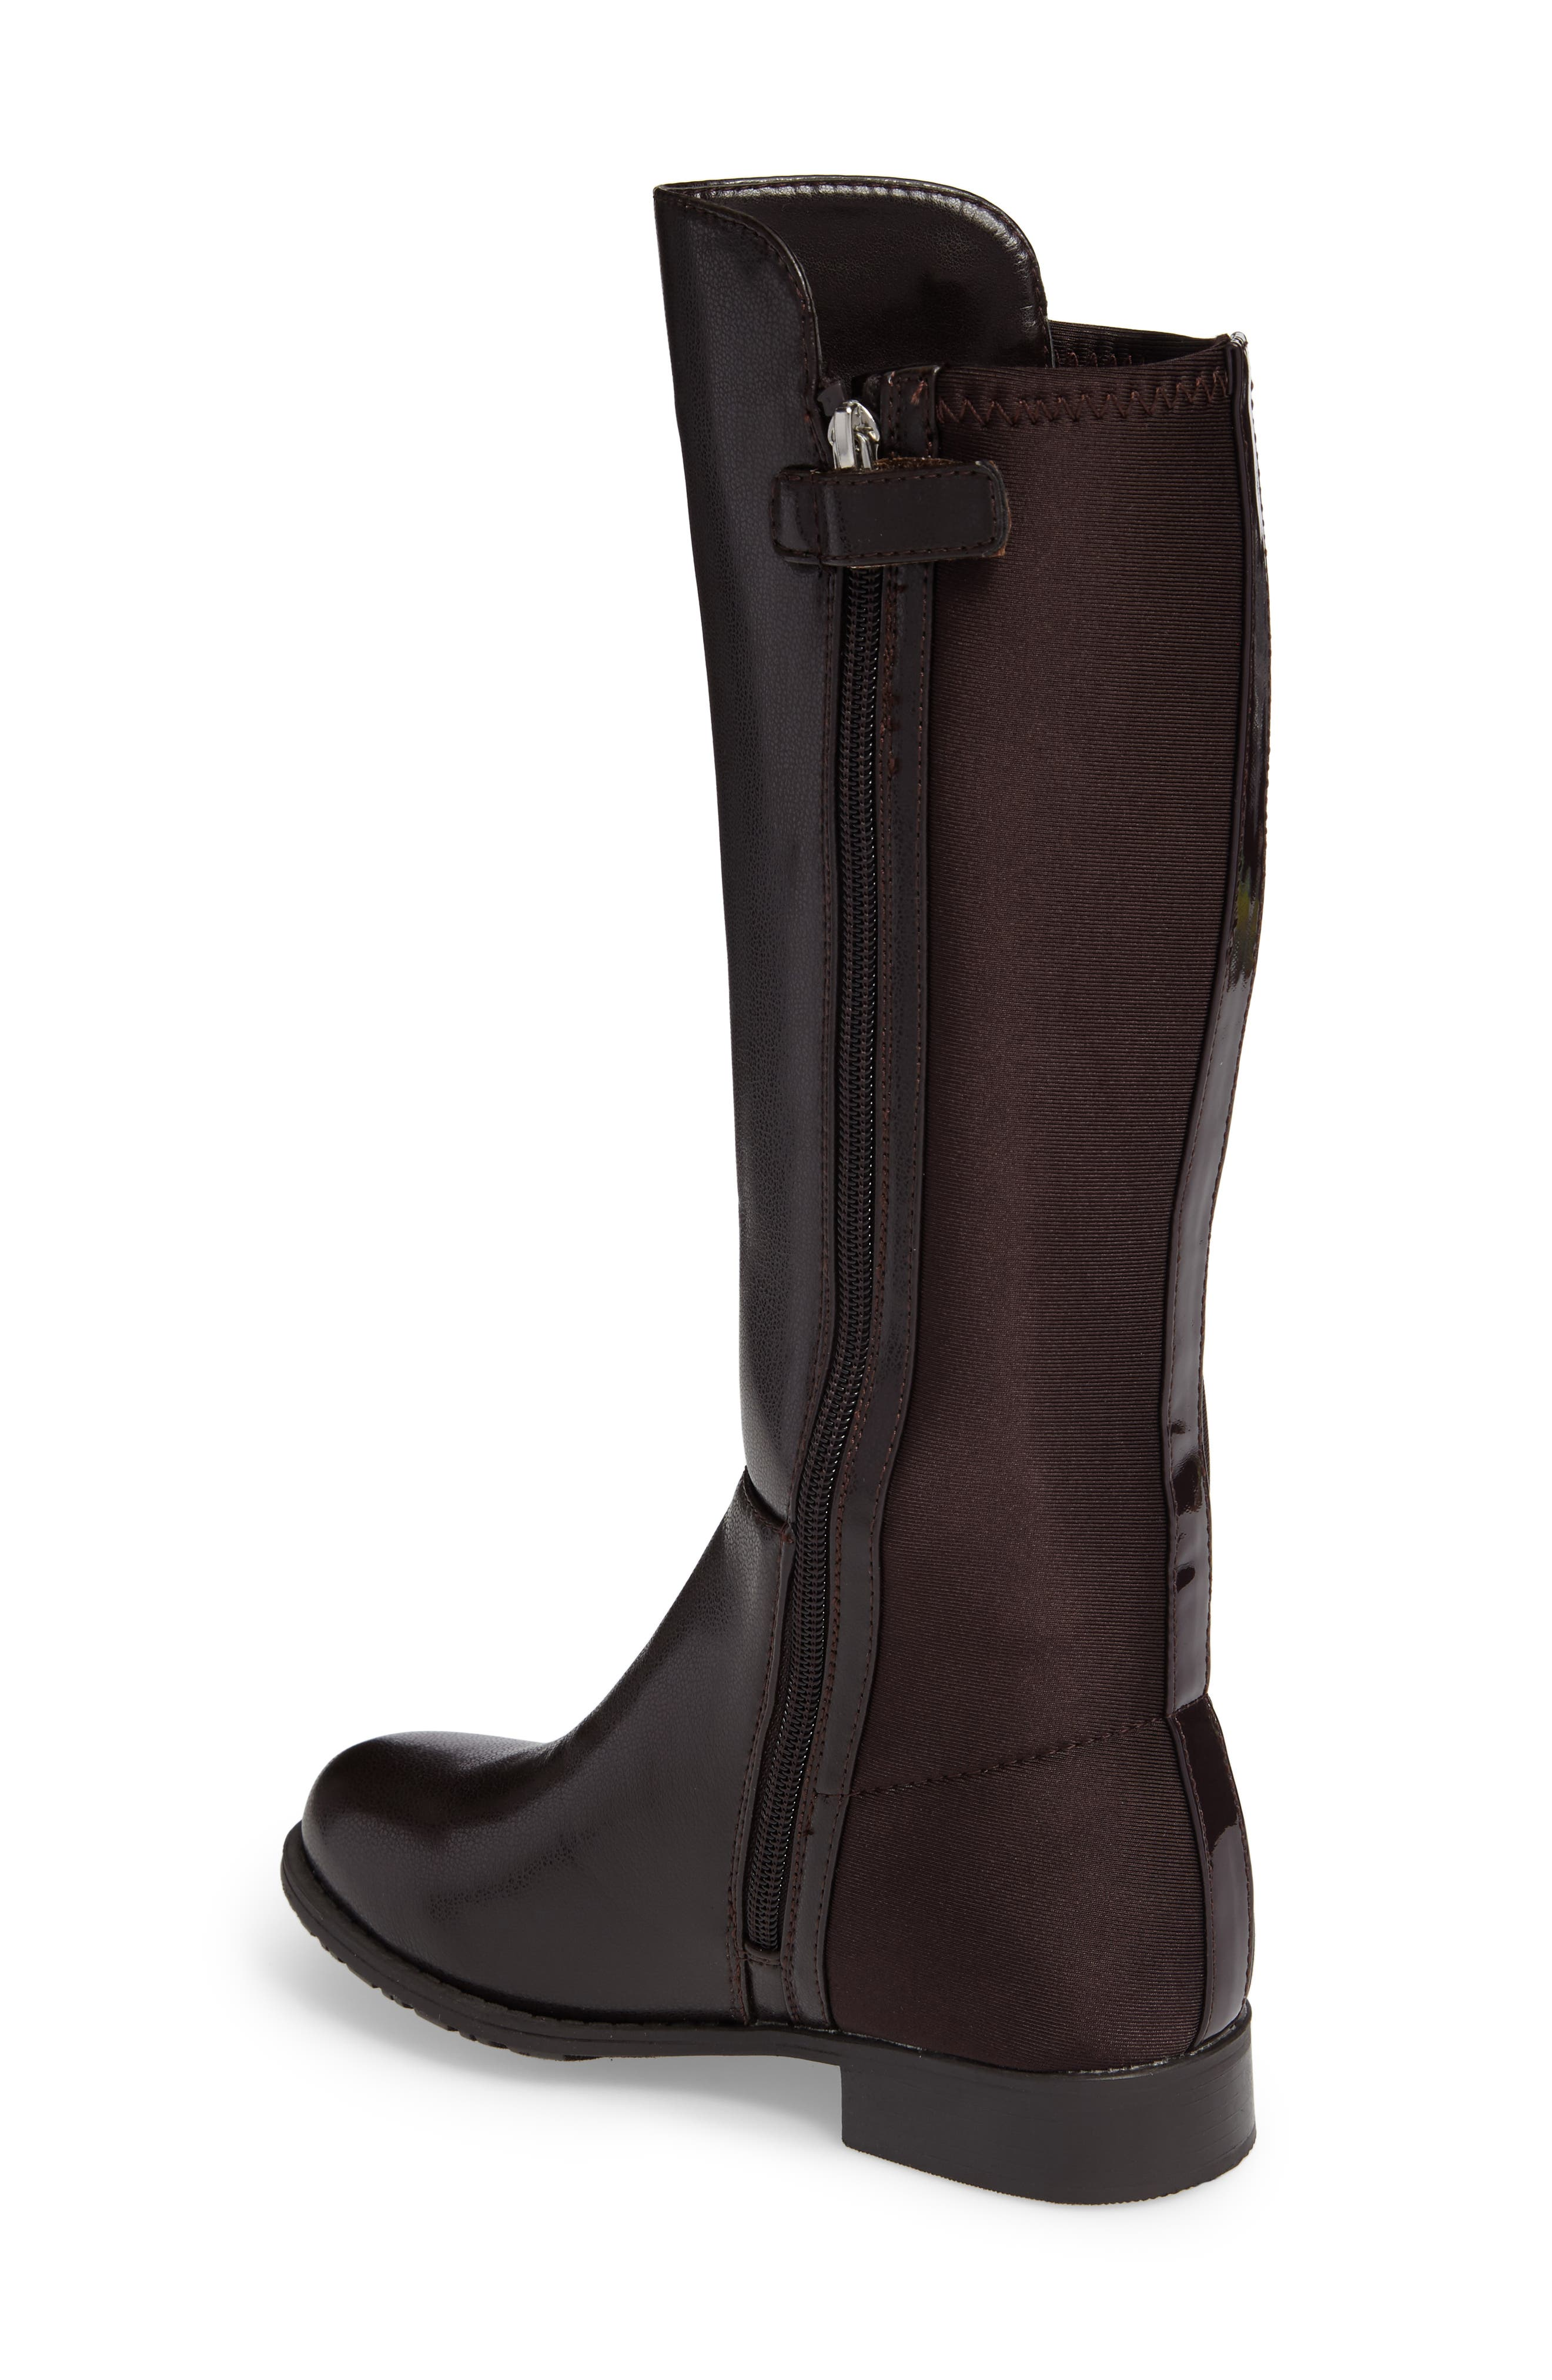 5050 Tall Riding Boot,                             Alternate thumbnail 4, color,